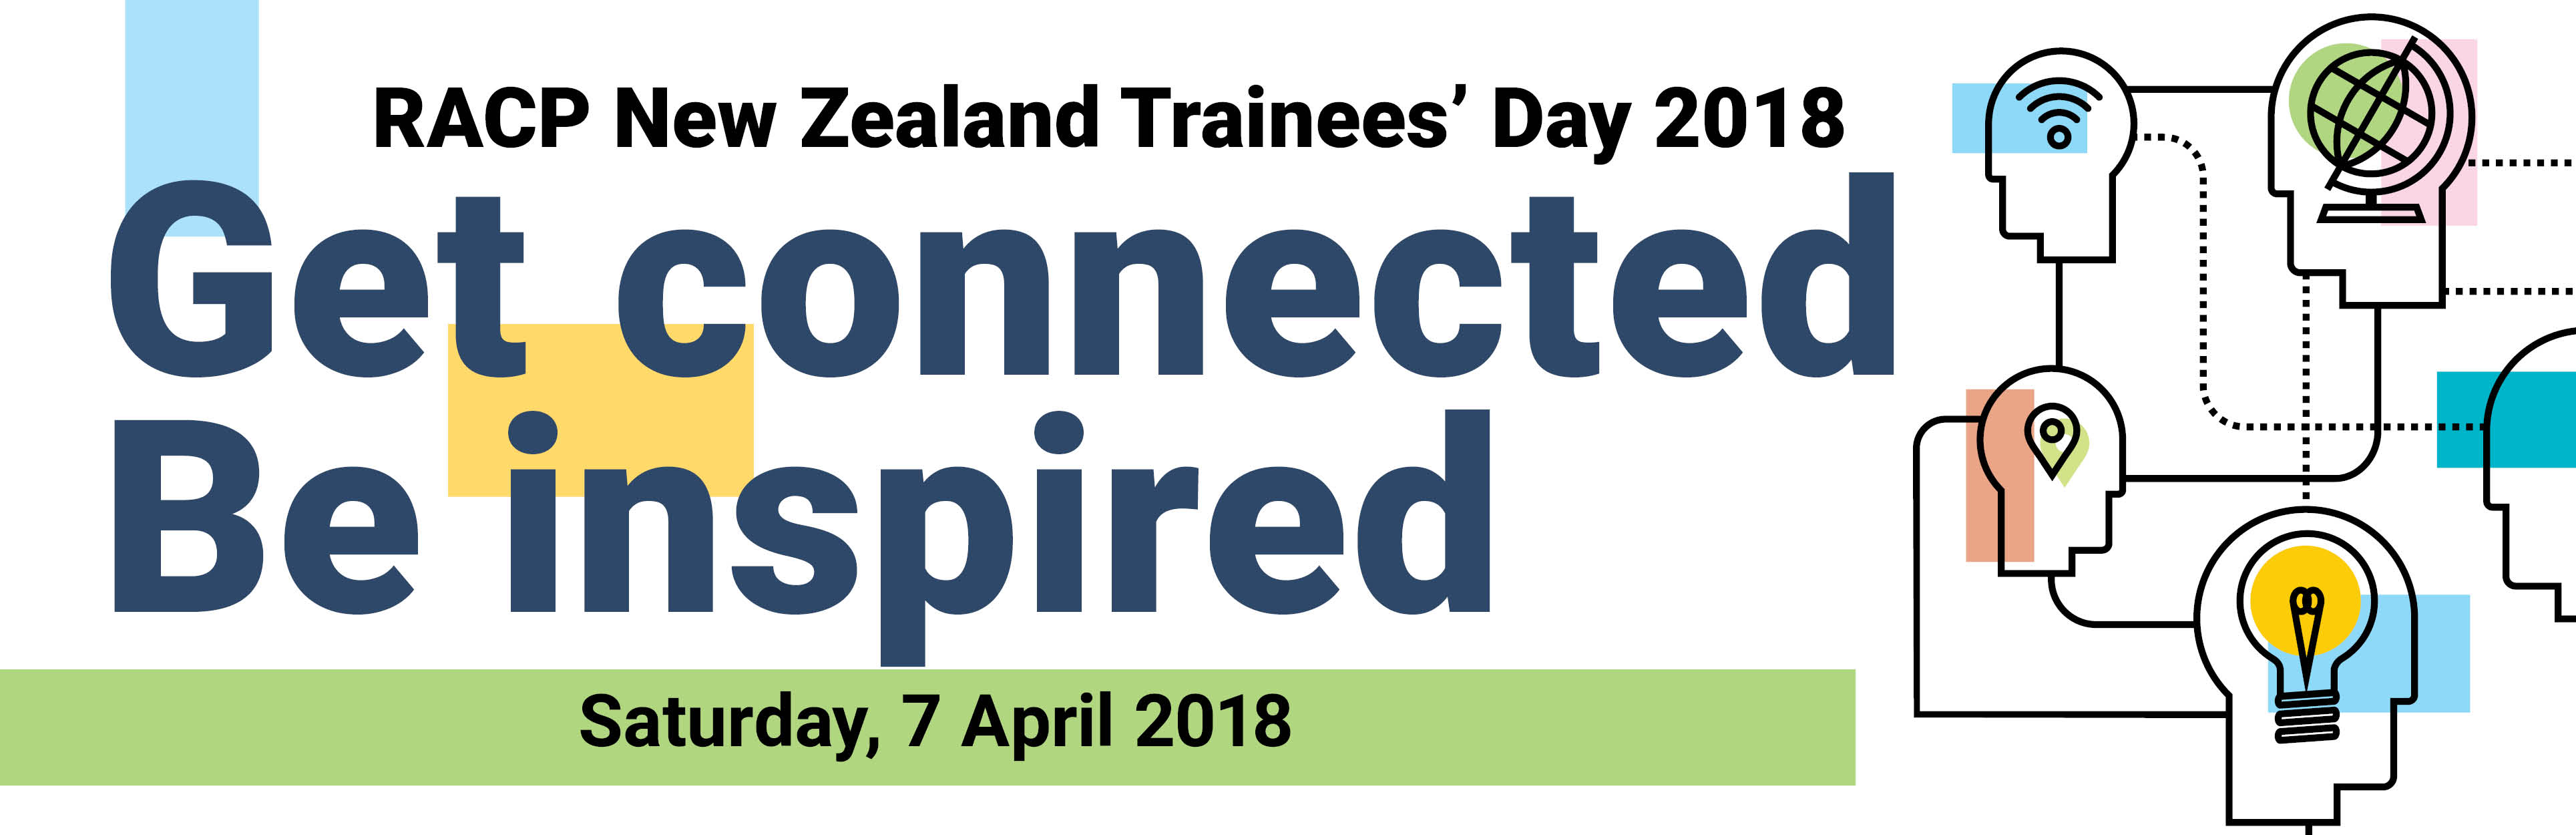 NZ Trainee's Day